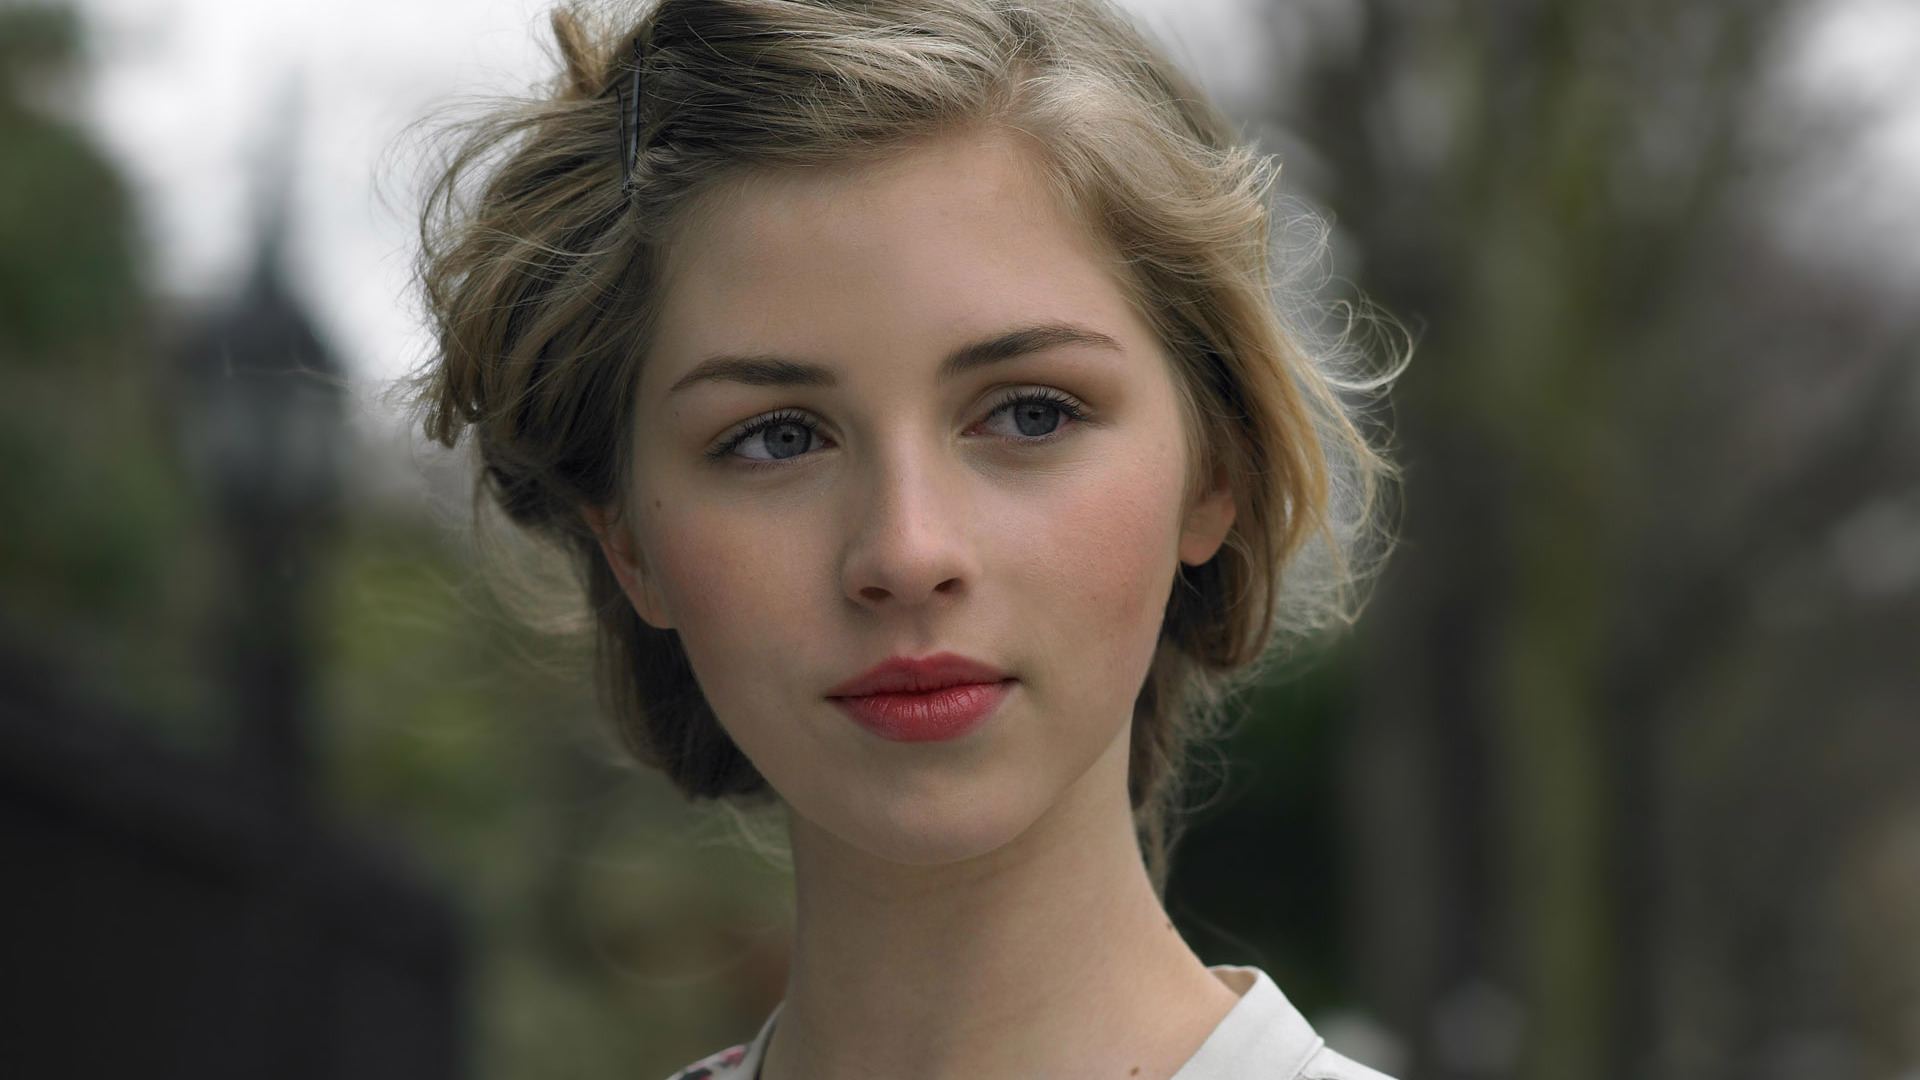 hermione corfield desktop wallpaper 58184 1920x1080 px